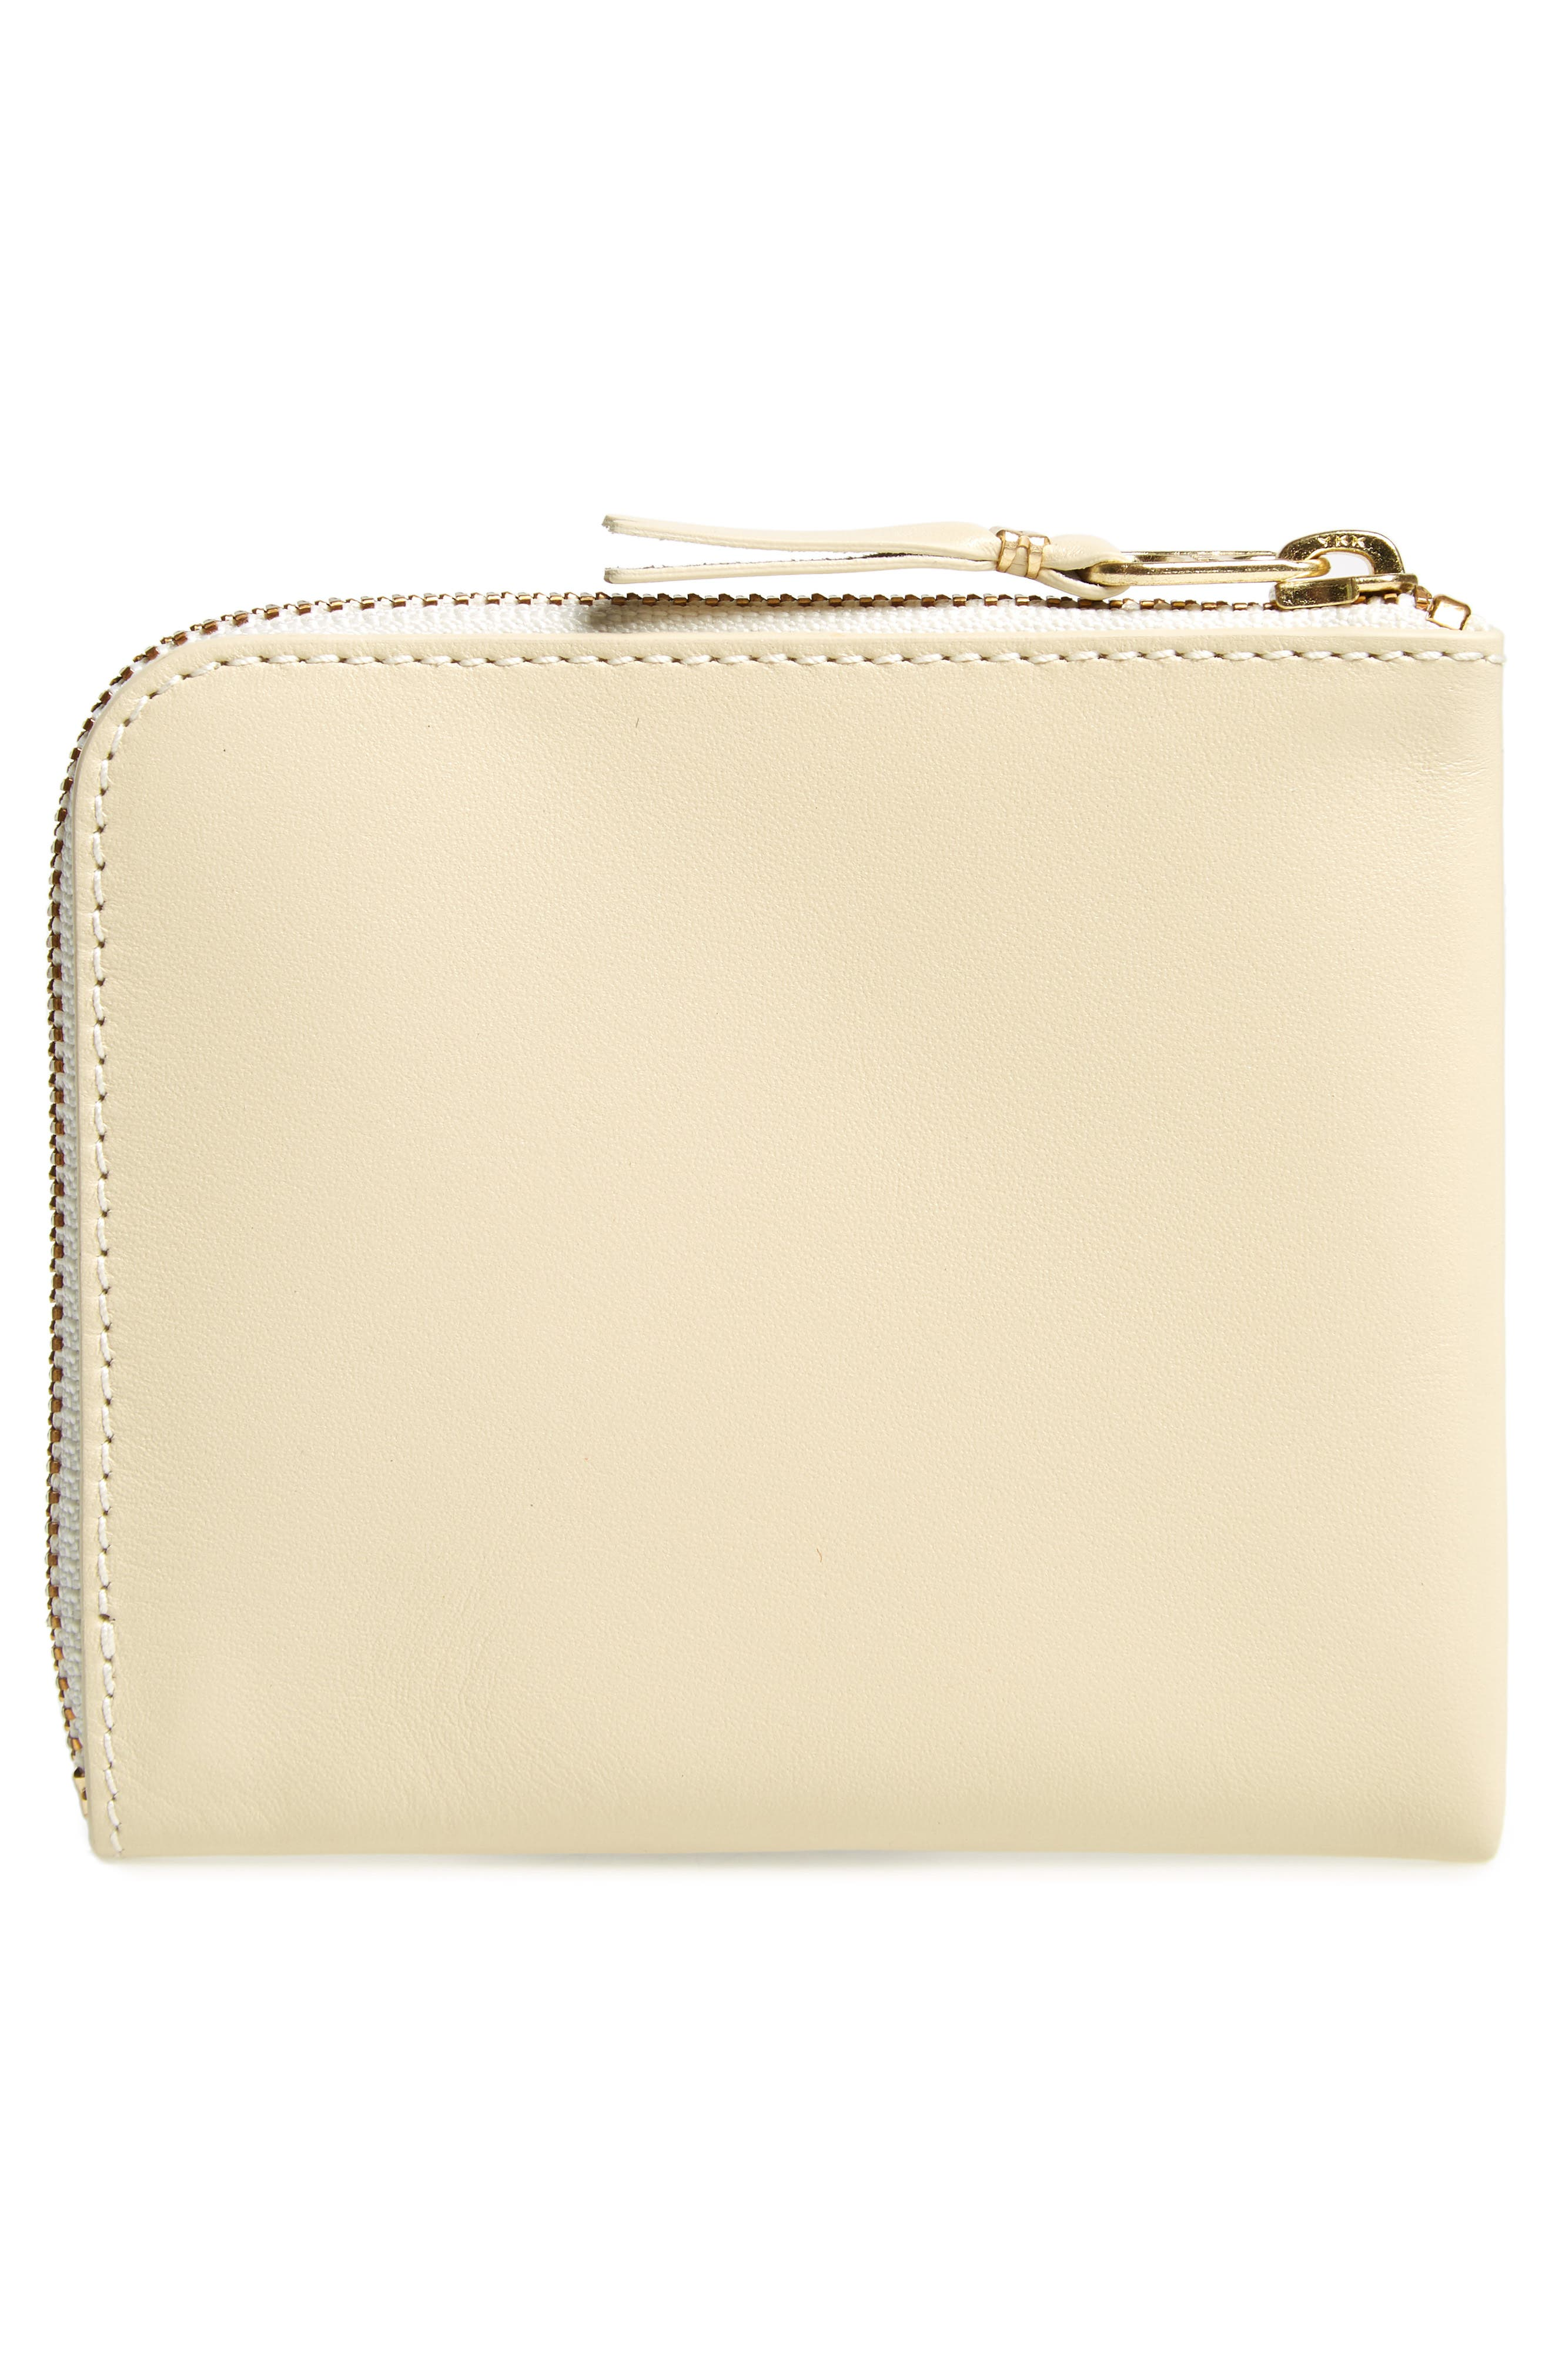 Classic Leather Line Wallet,                             Alternate thumbnail 3, color,                             OFF WHITE